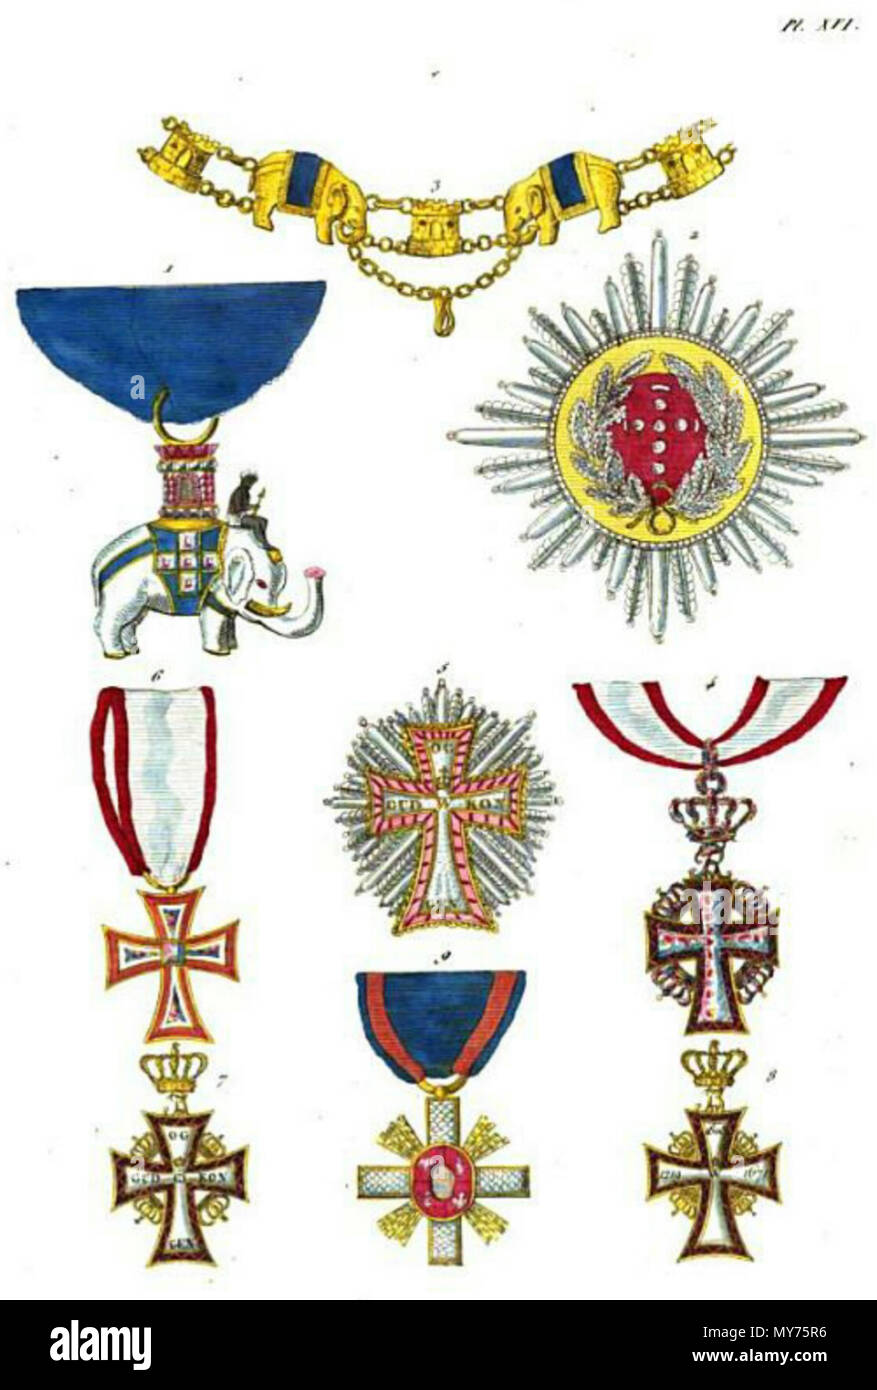 .  Français : Collection historique des ordres de chevalerie civils et militaires... English: Collection of historical orders of chivalry civil and military...: 1. Order of Elephant, badge (Denmark) 2. Order of Elephant, star (Denmark) 3. Order of Elephant, collar (Denmark) 4. Order of Dannebrog, badge 1st class (Denmark) 5. Order of Dannebrog, star (Denmark) 6. Order of Dannebrog, badge 2nd class with diamonds (Denmark) 7. Order of Dannebrog, badge 4th class obverse (Denmark) 8. Order of Dannebrog, badge 4th class reverse (Denmark) 9. Order of Fidelity or Ordre de l'Union Parfaite (Denmark) . - Stock Image